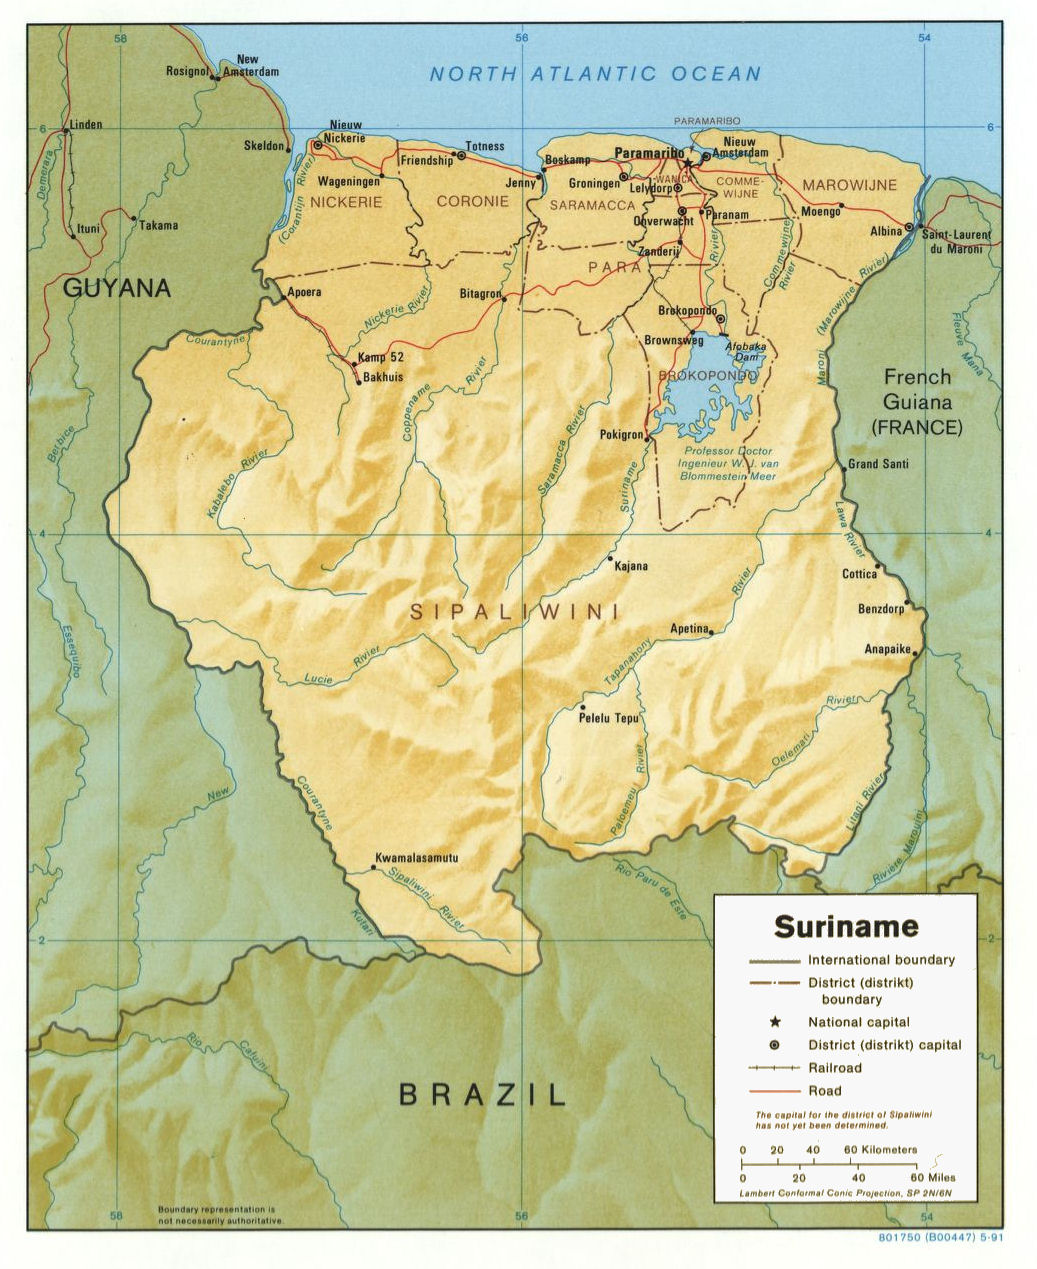 Suriname Maps - Where is suriname on the map